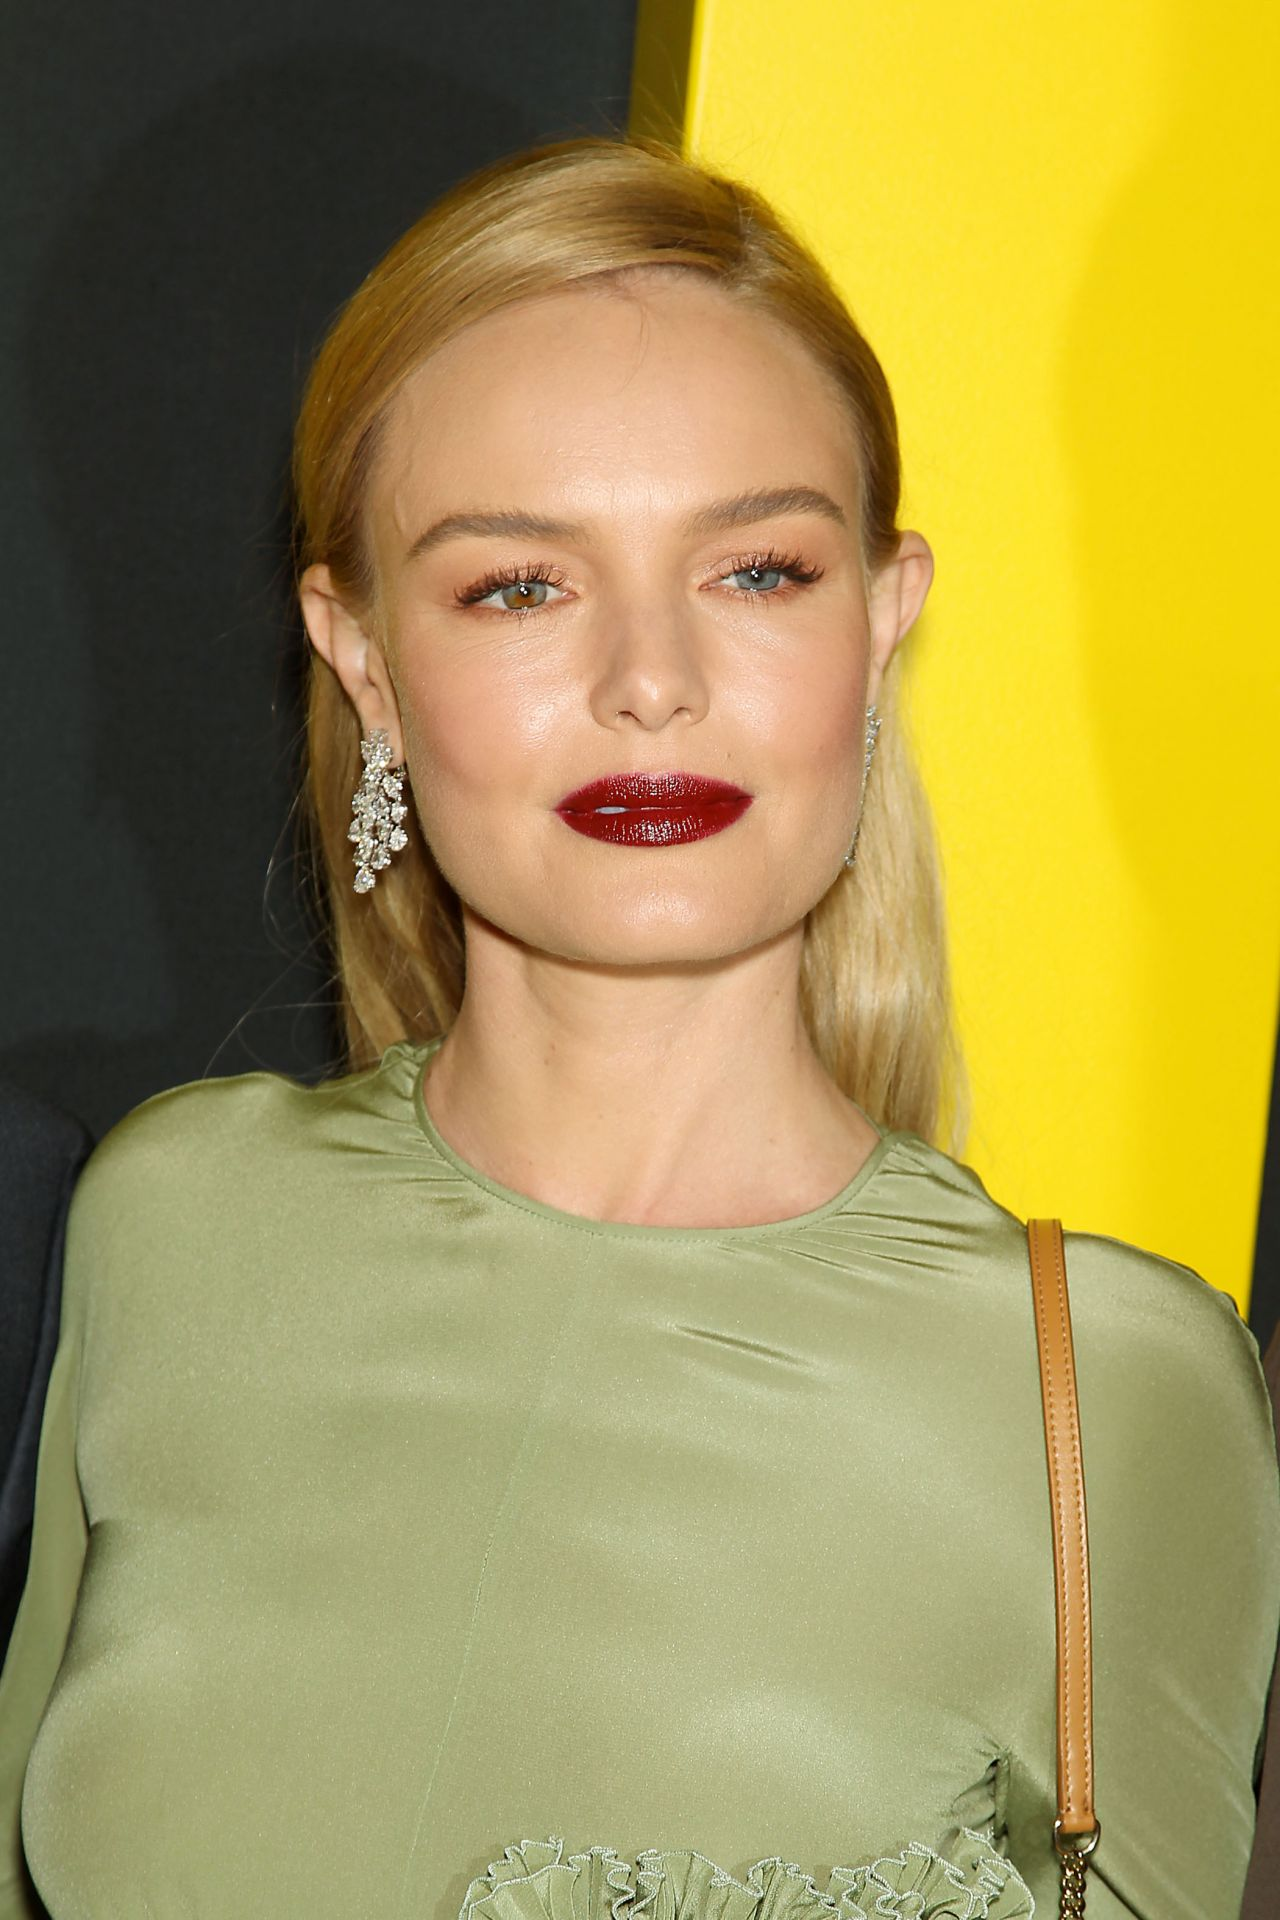 Kate Bosworth - Nation... Kate Bosworth